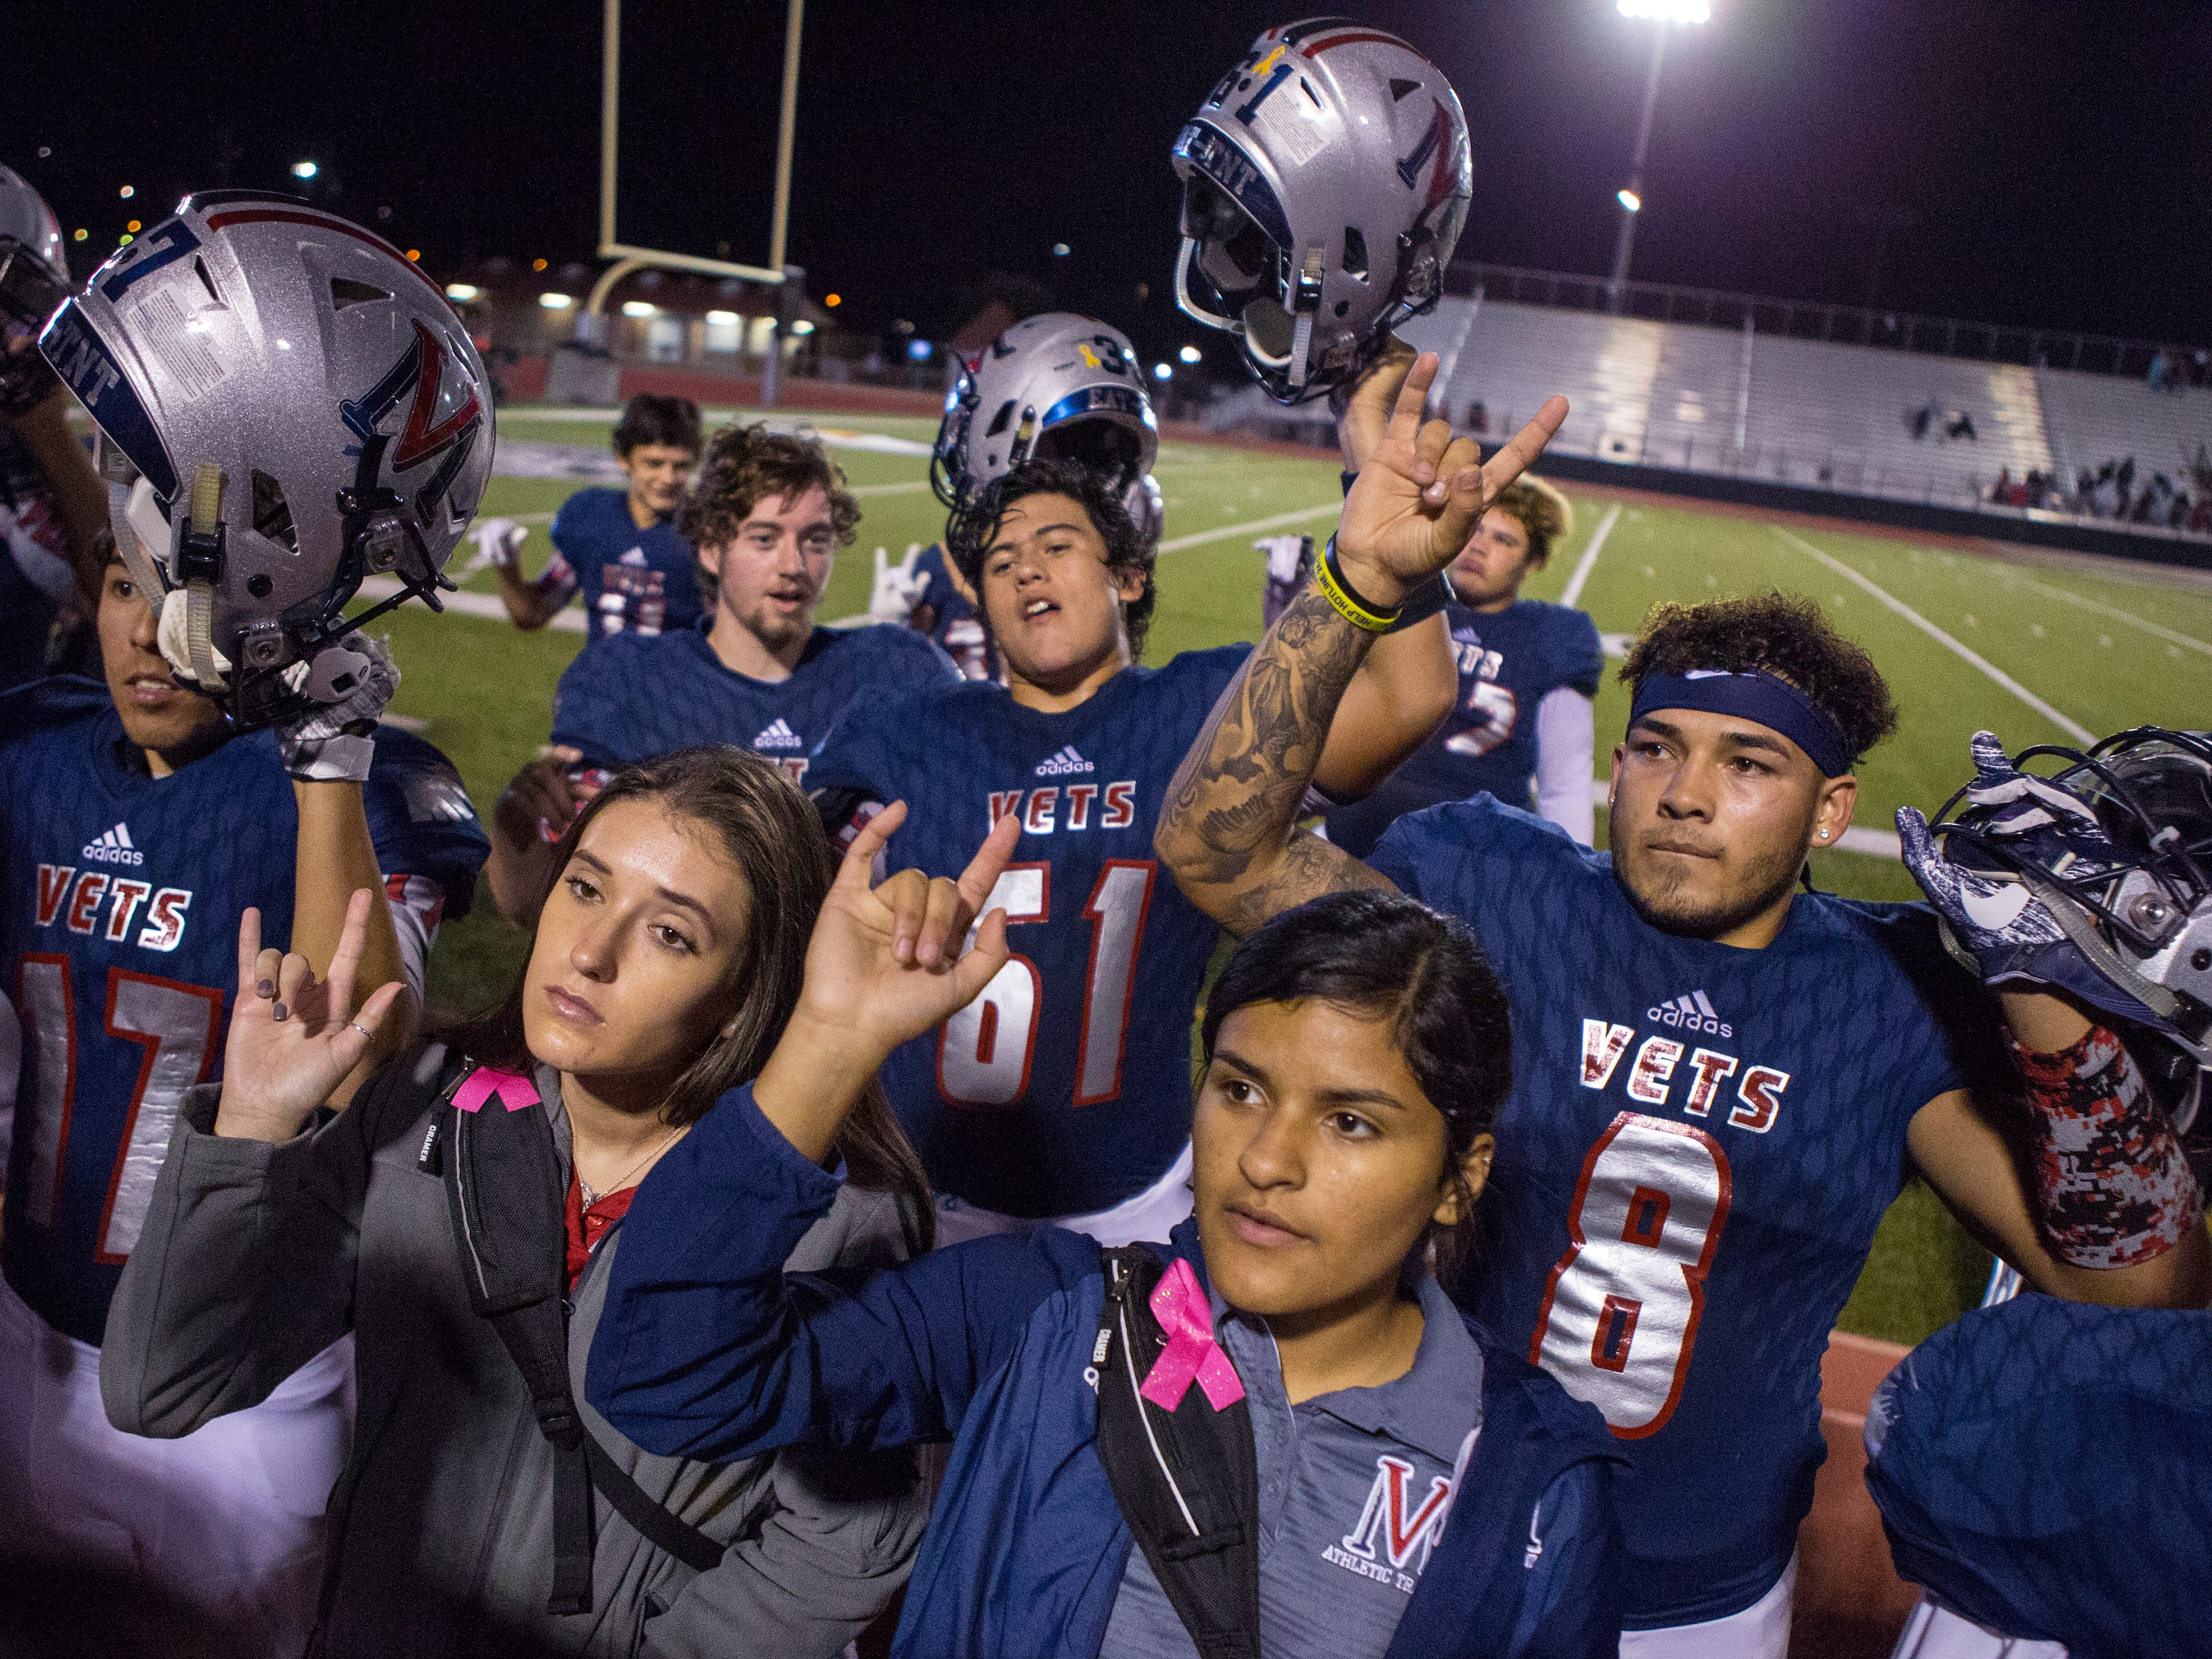 Veterans Memorial's David Soto (back right) stands as the school song is played after the team won over Victoria West at Cabaniss Field on Friday, November 2, 2018. The win also clinched the District title for Veterans Memorial.